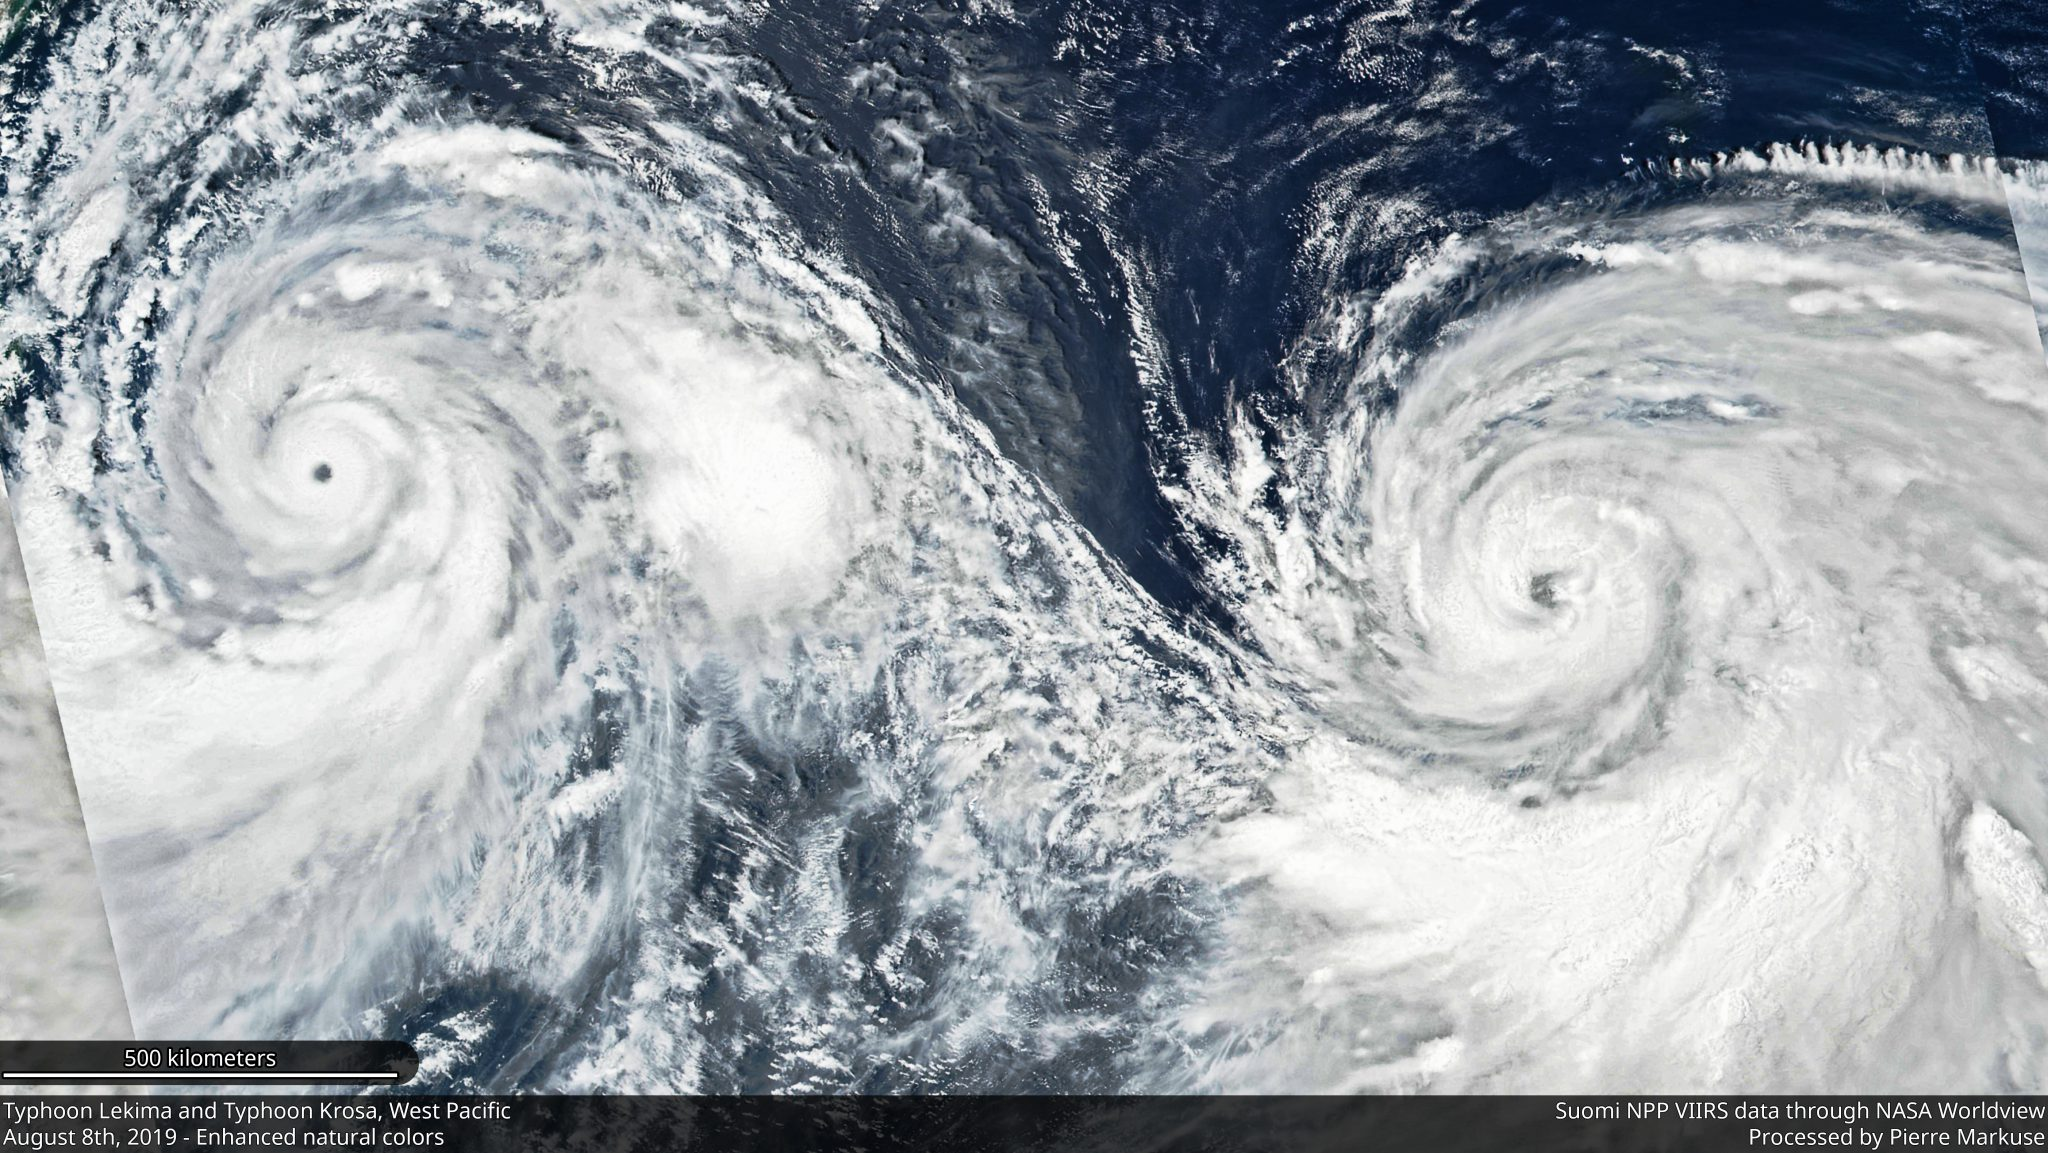 desc:Typhoon Lekima and Typhoon Krosa, West Pacific - August 8th, 2019